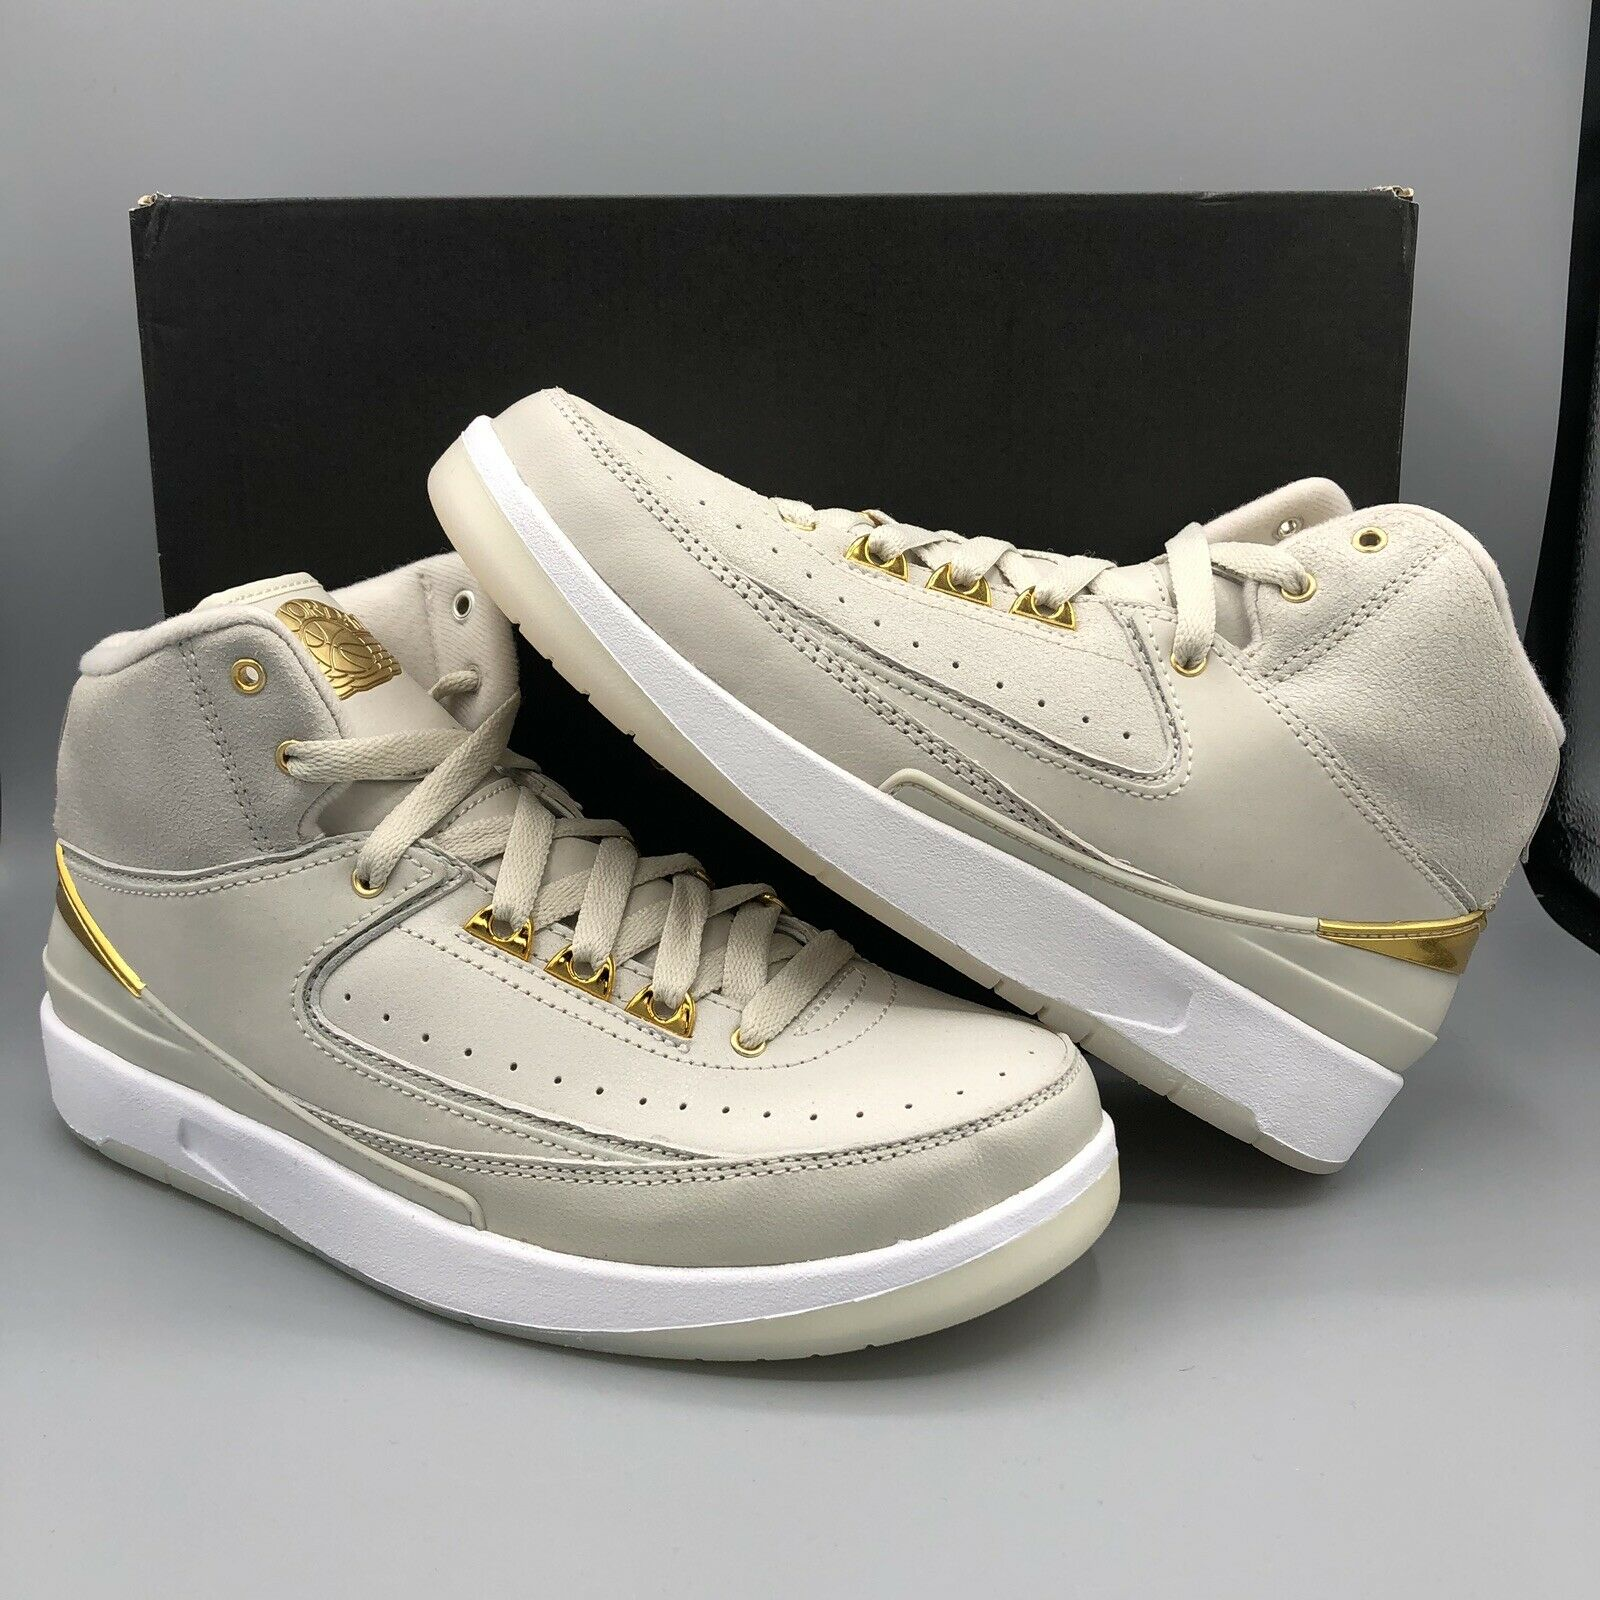 Nike Air Jordan Retro II BG Quai 54 Size 5y 866034 001 gold Off White DB III I V